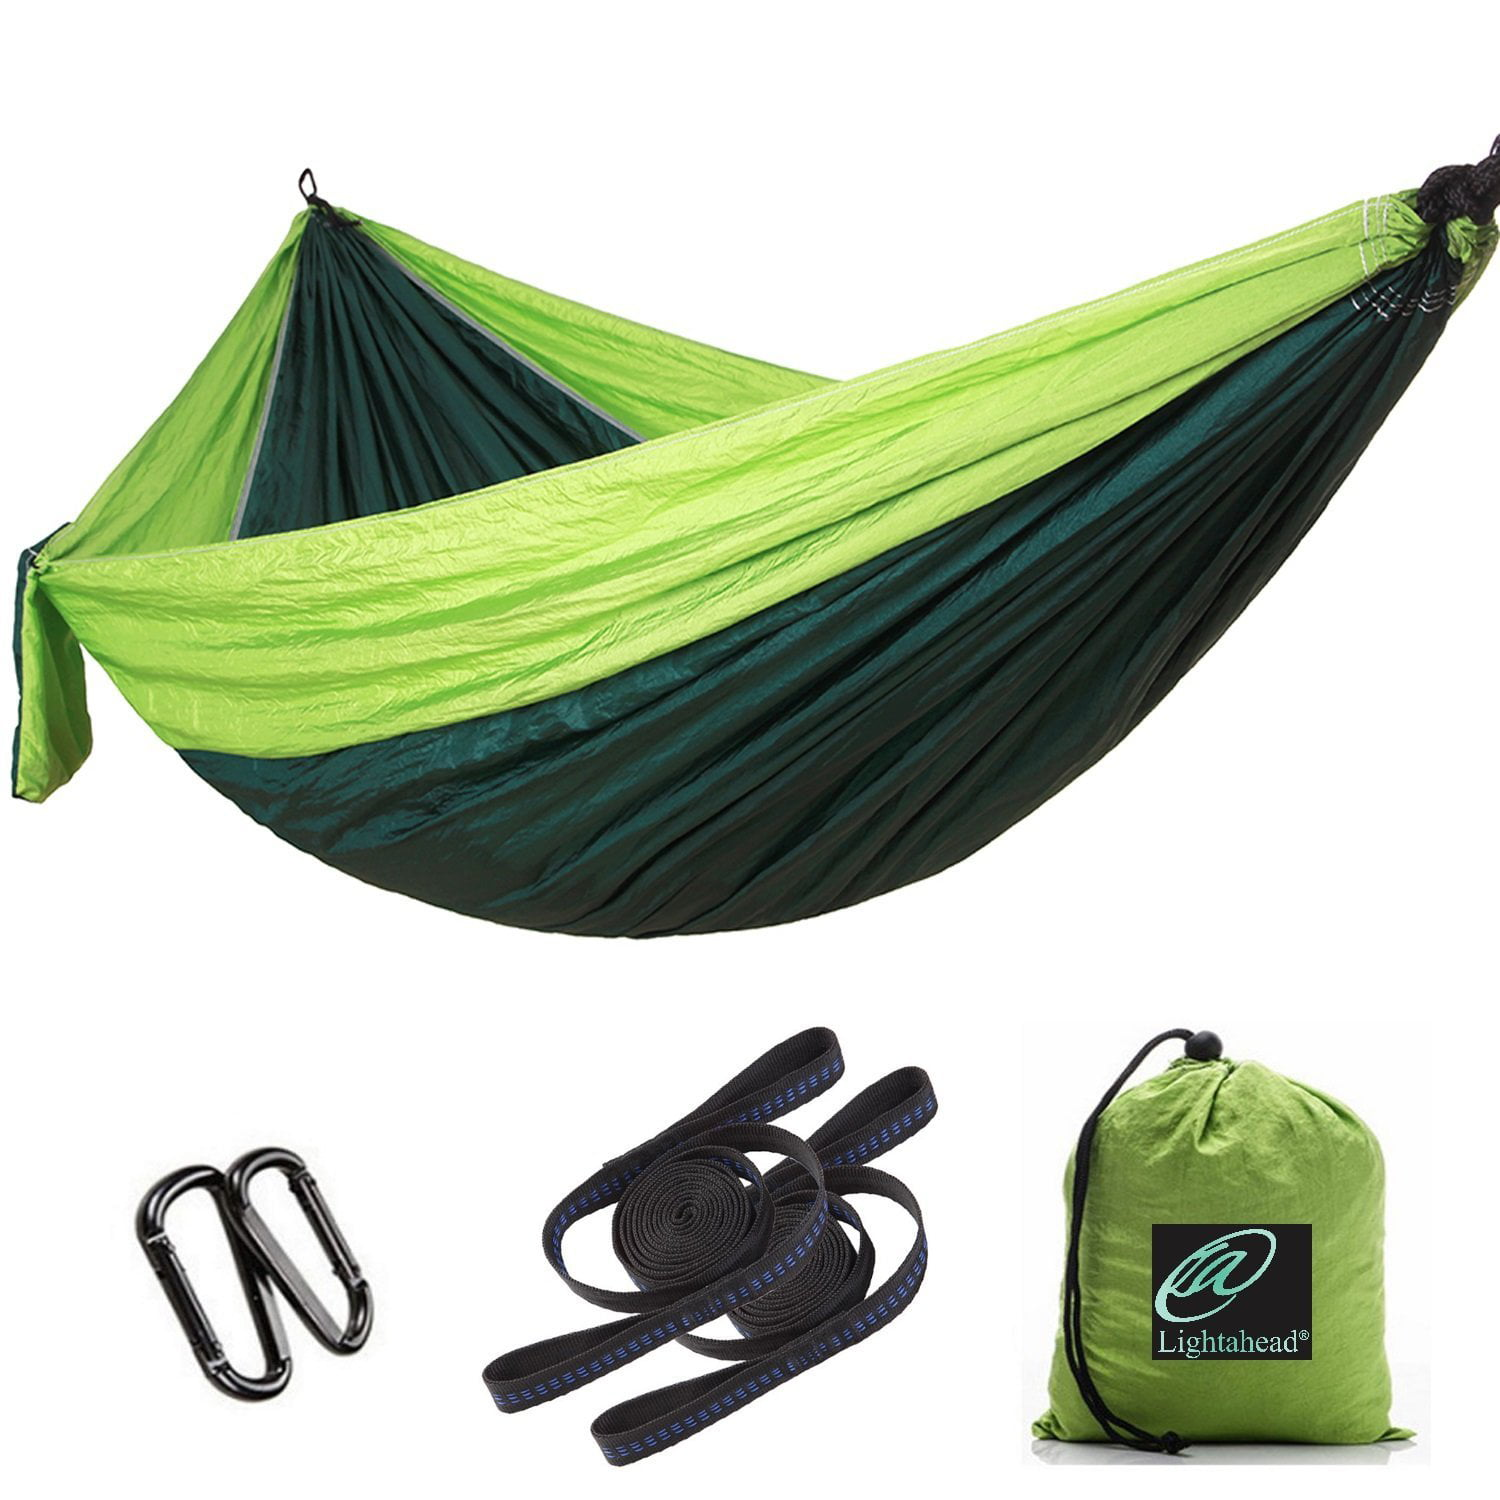 Lightahead Single Parachute Portable Camping Hammock Including 2 Straps with Loops & Carabiners� Heavy Duty Lightweight... by Lightahead®